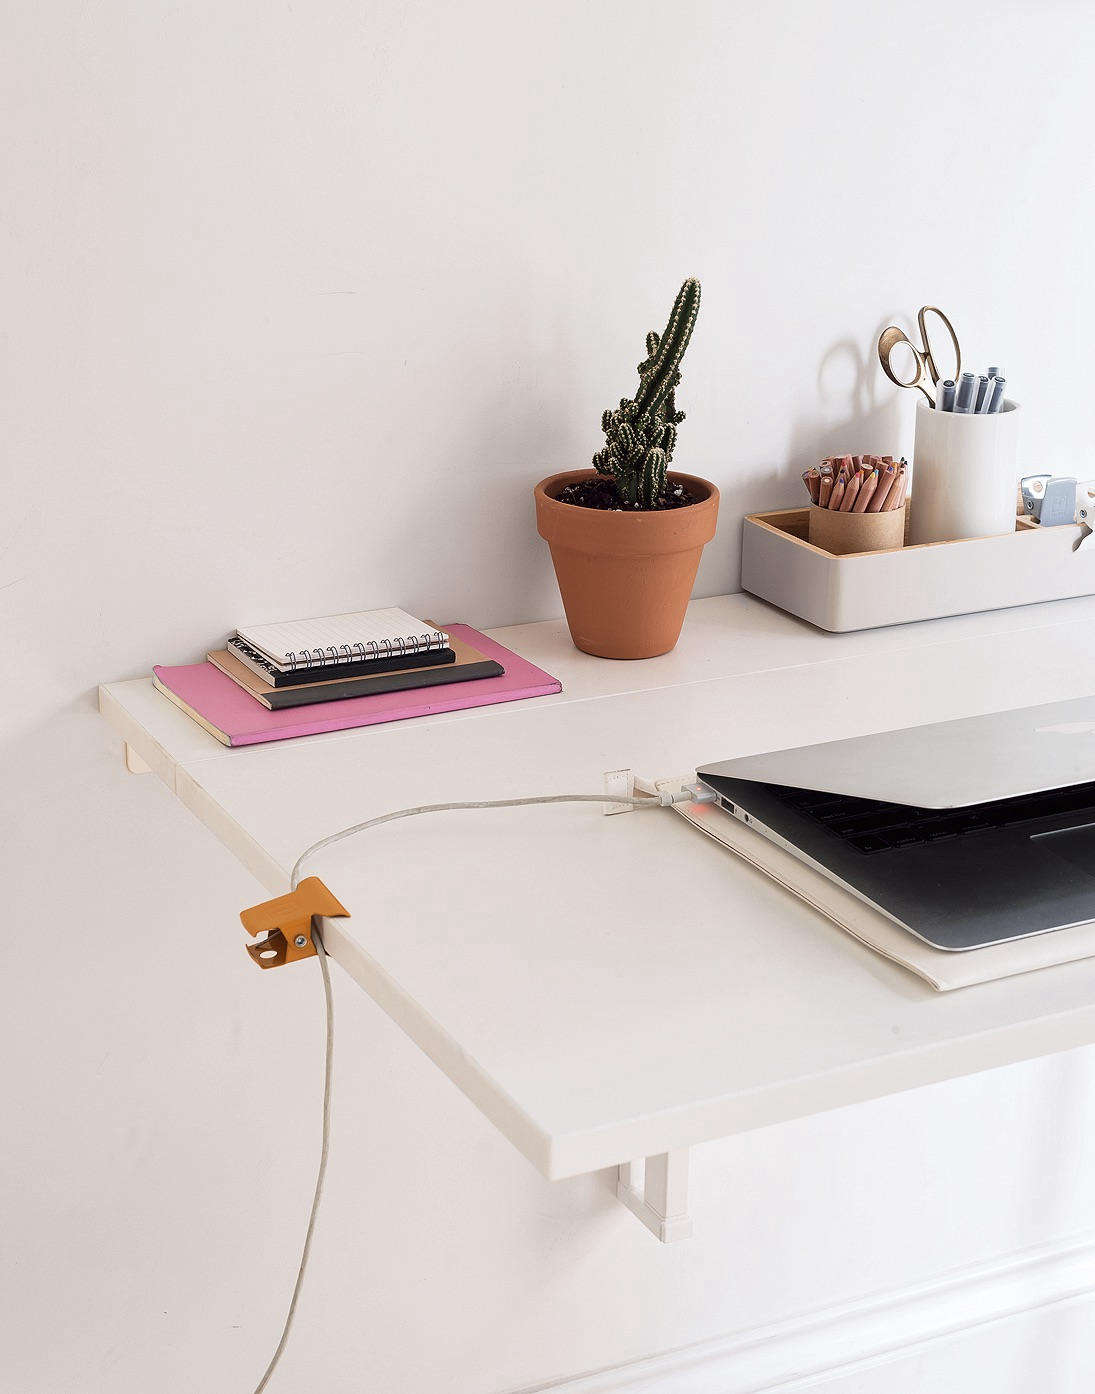 Binder Clip on Disappearing Desk in Organized Home Book, Image by Matthew Williams